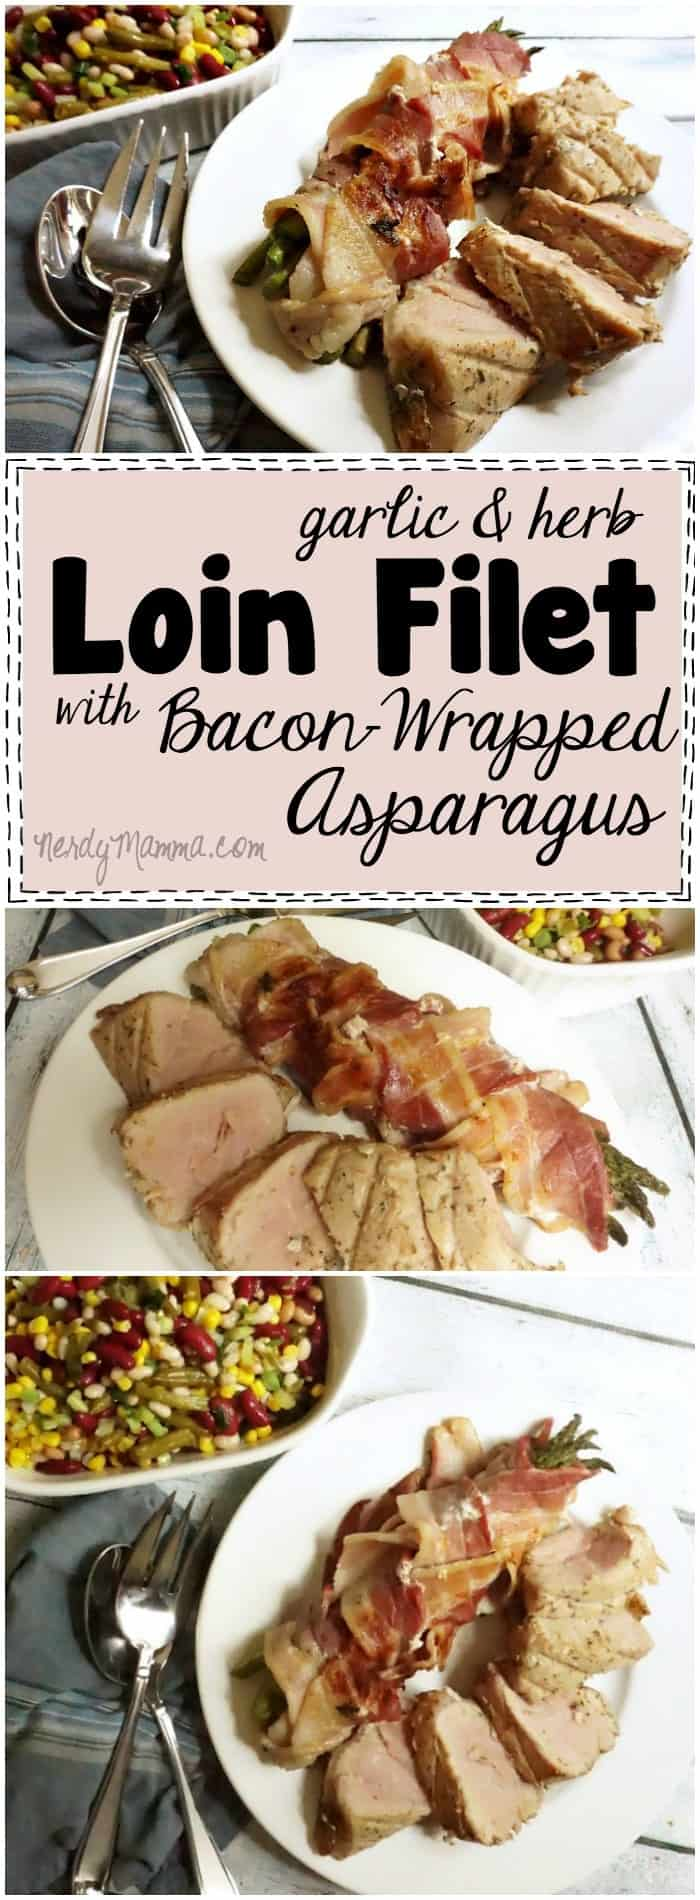 Mmmm...Garlic and Herb Loin Filet with asparagus wrapped in bacon Best recipe ever!